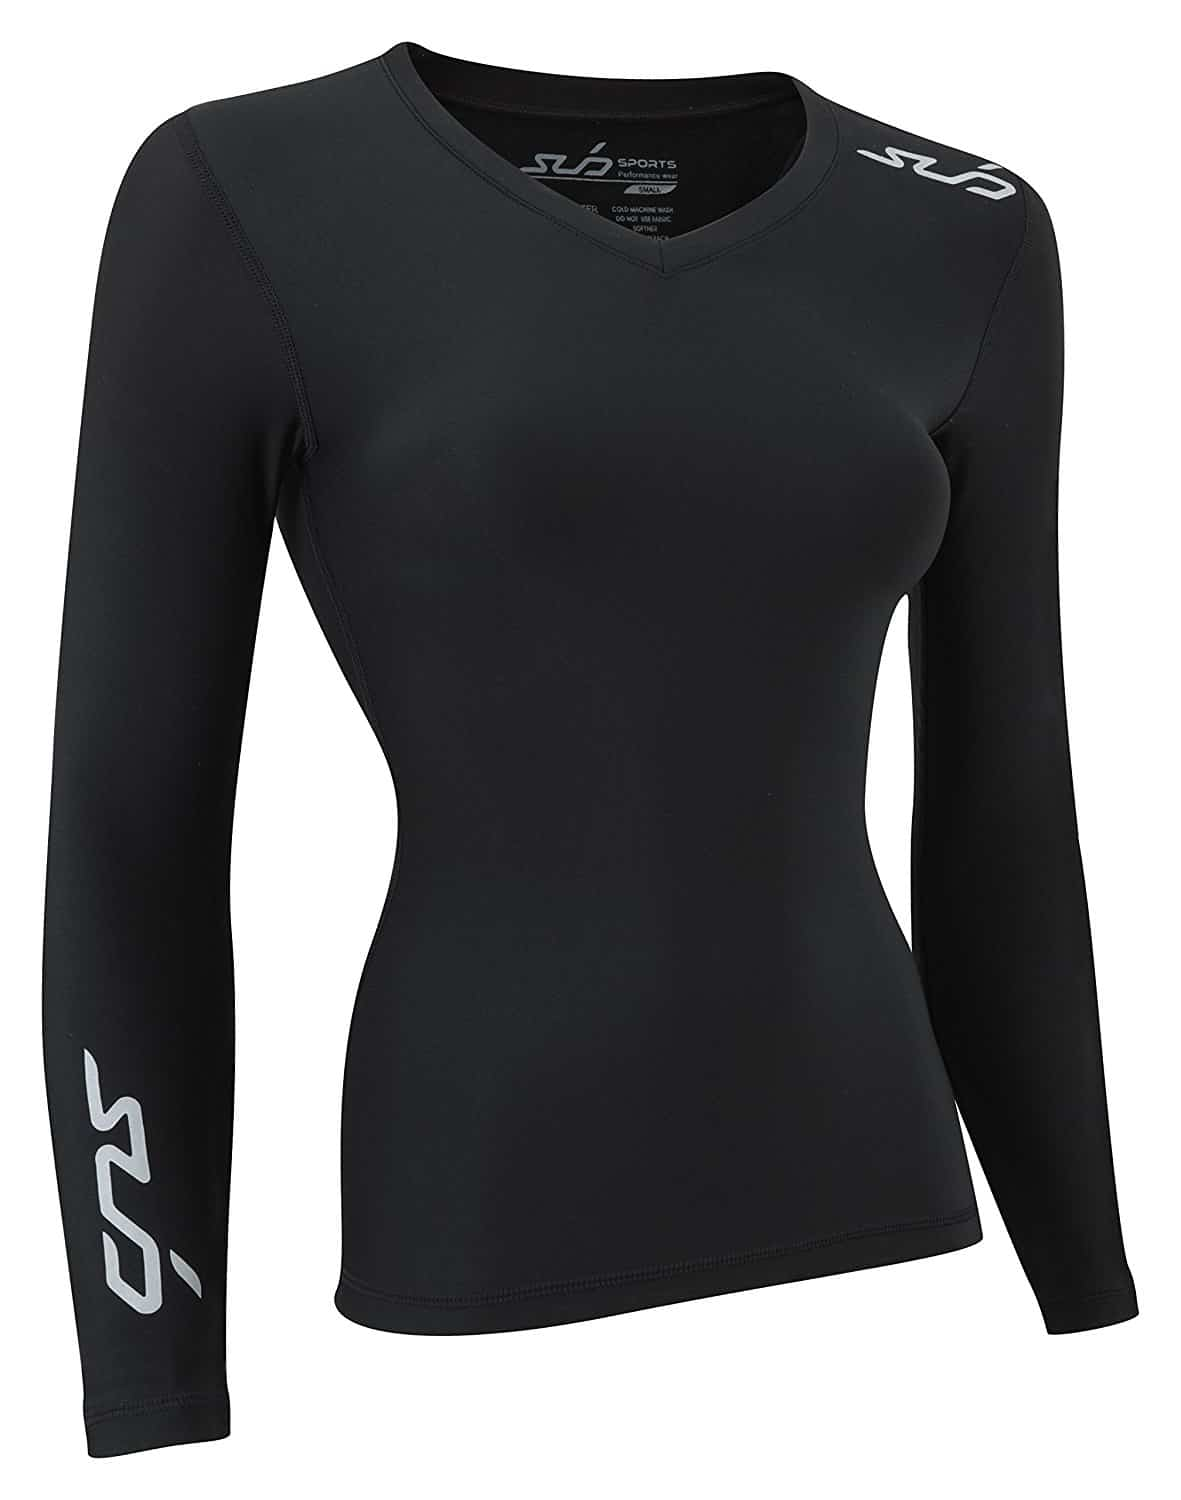 Best Merino Wool Base Layer for Skiing – Sub Sports